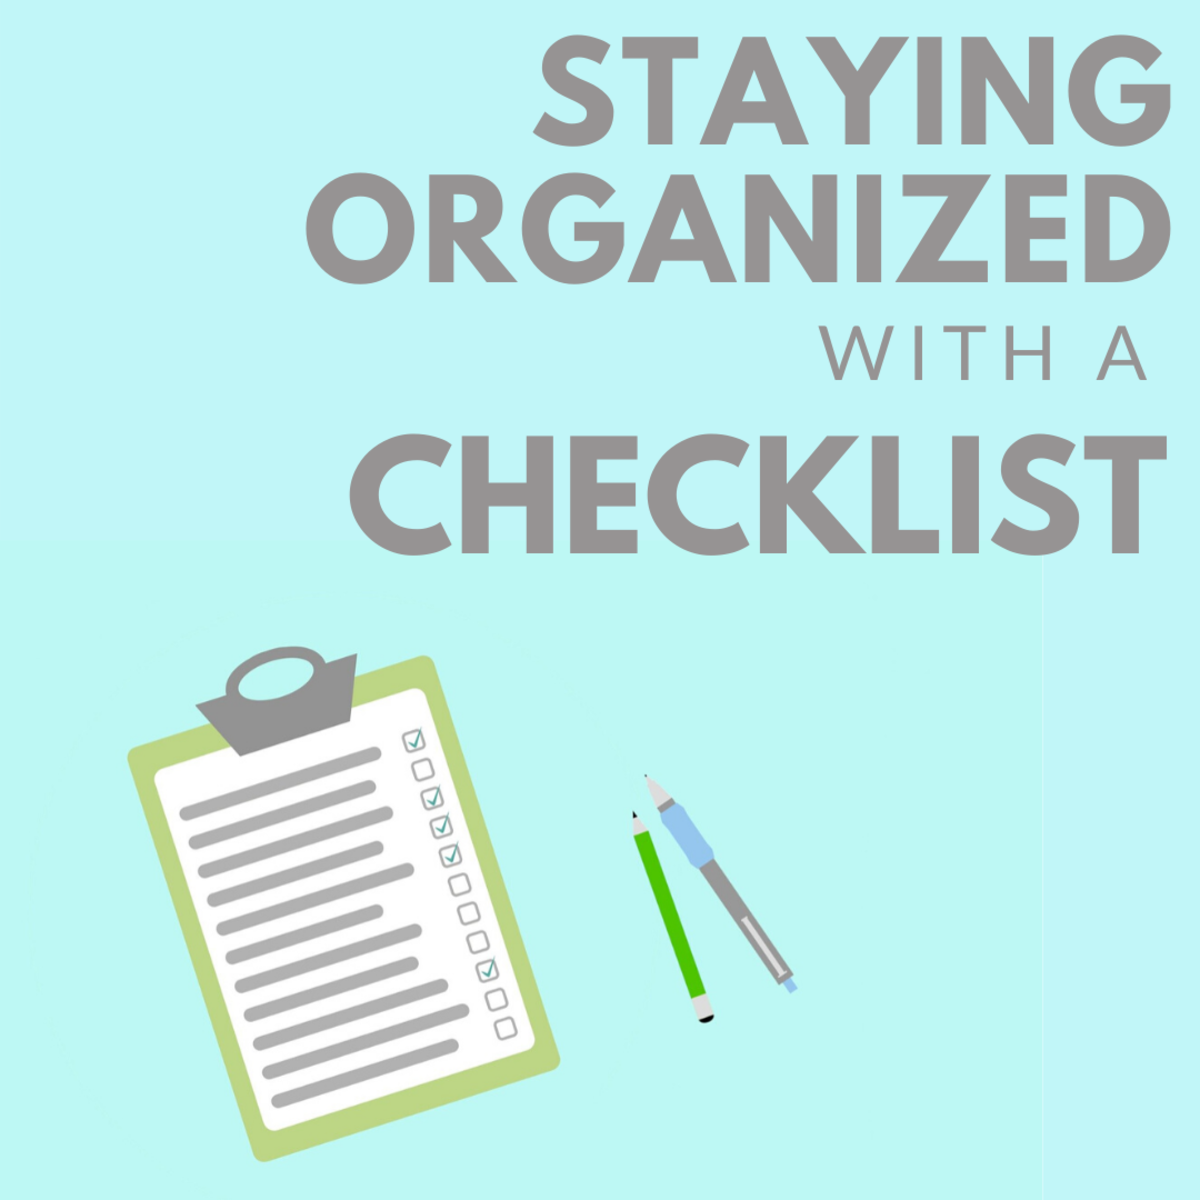 This article will break down how to use checklists to stay organized.